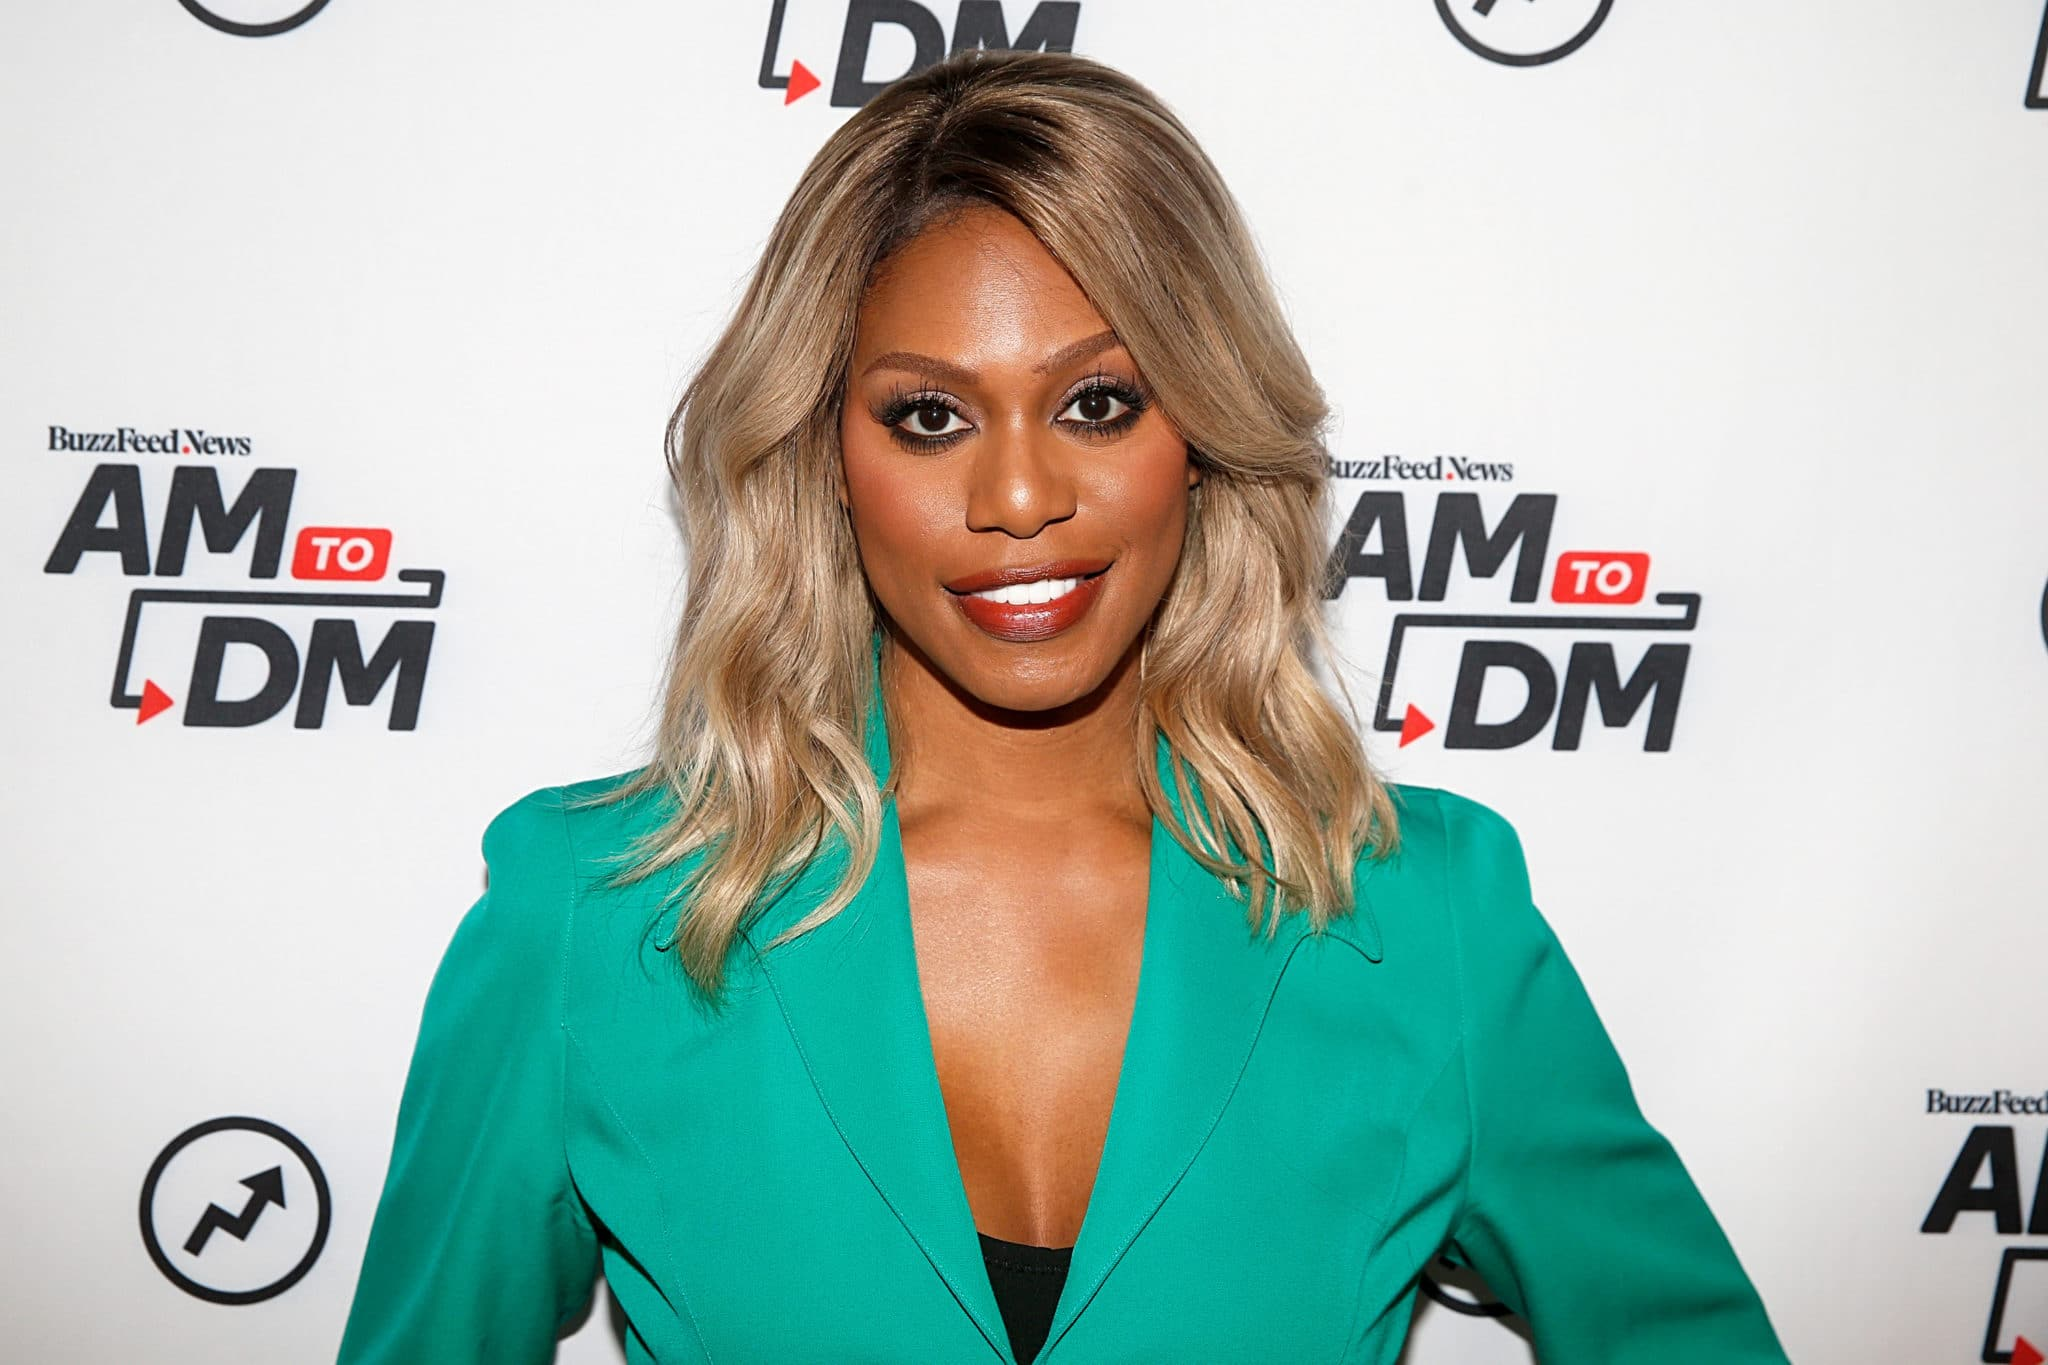 Laverne Cox attends BuzzFeed's AM To DM on October 07, 2019 in New York City.